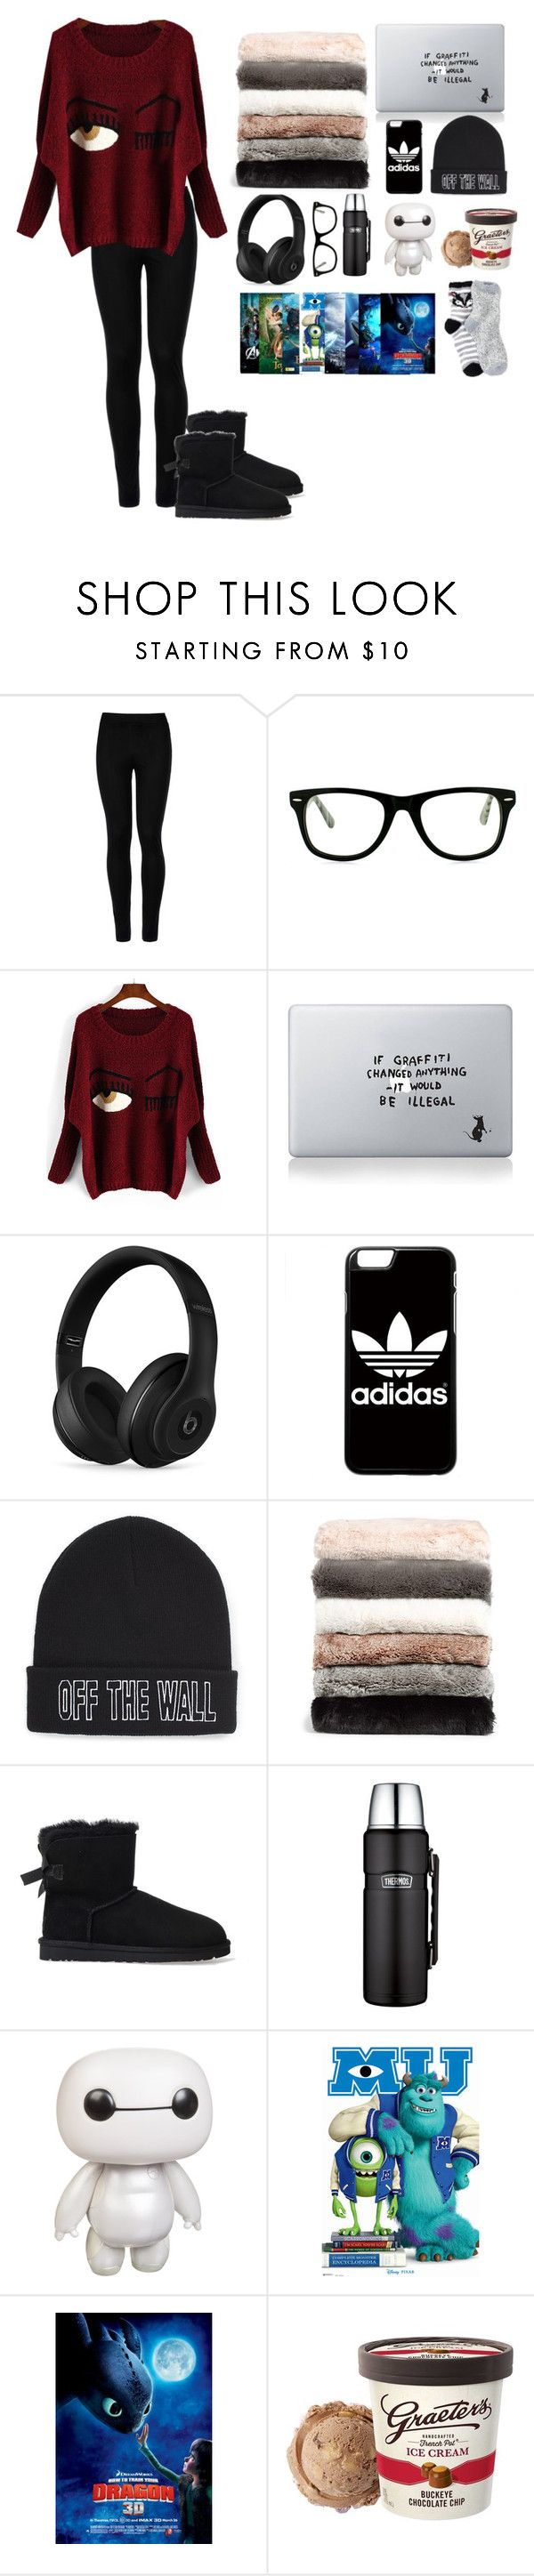 """Sick Days"" by camposv571 ❤ liked on Polyvore featuring Wolford, Muse, Vinyl Revolution, Beats by Dr. Dre, adidas, Vans, Nordstrom, UGG Australia, Thermos and Disney"